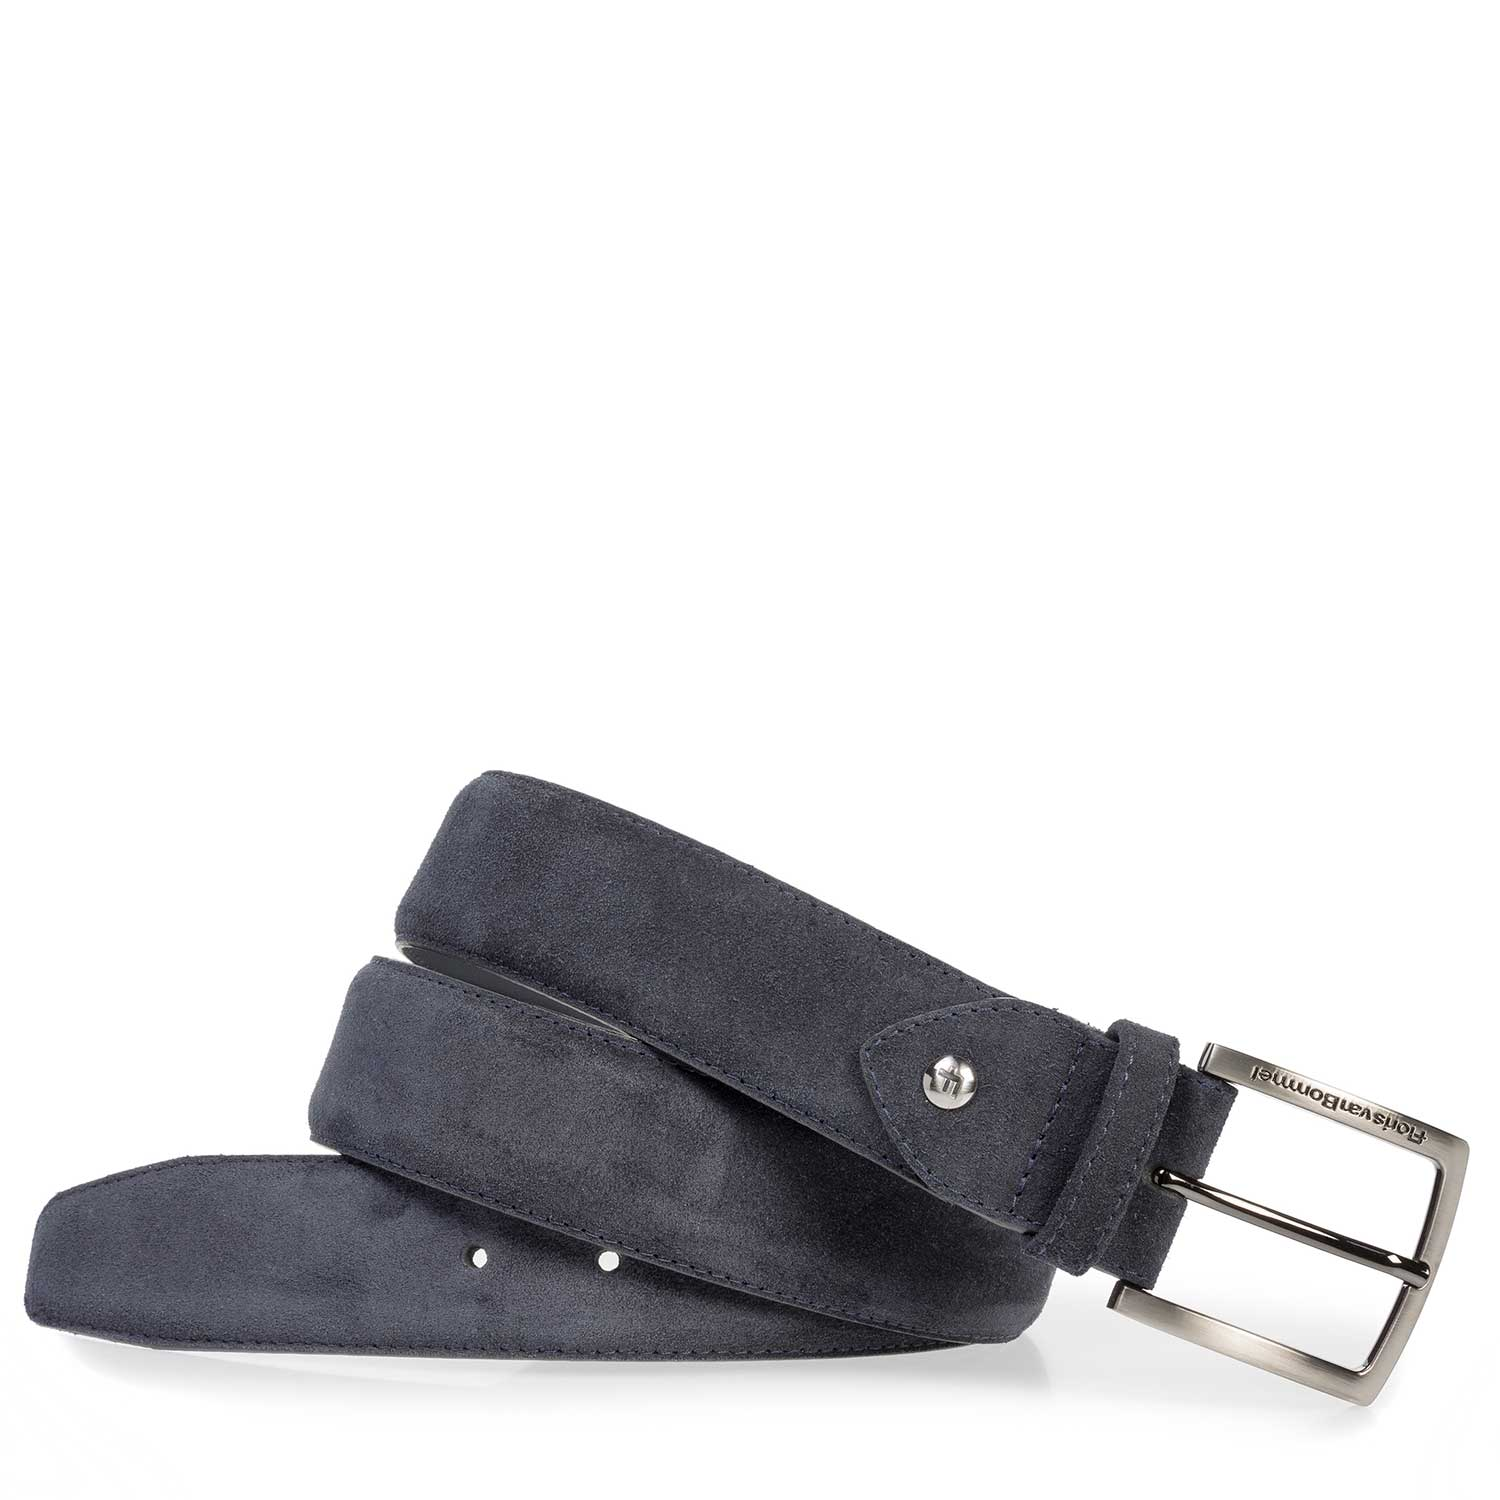 75202/07 - Dark blue suede leather belt